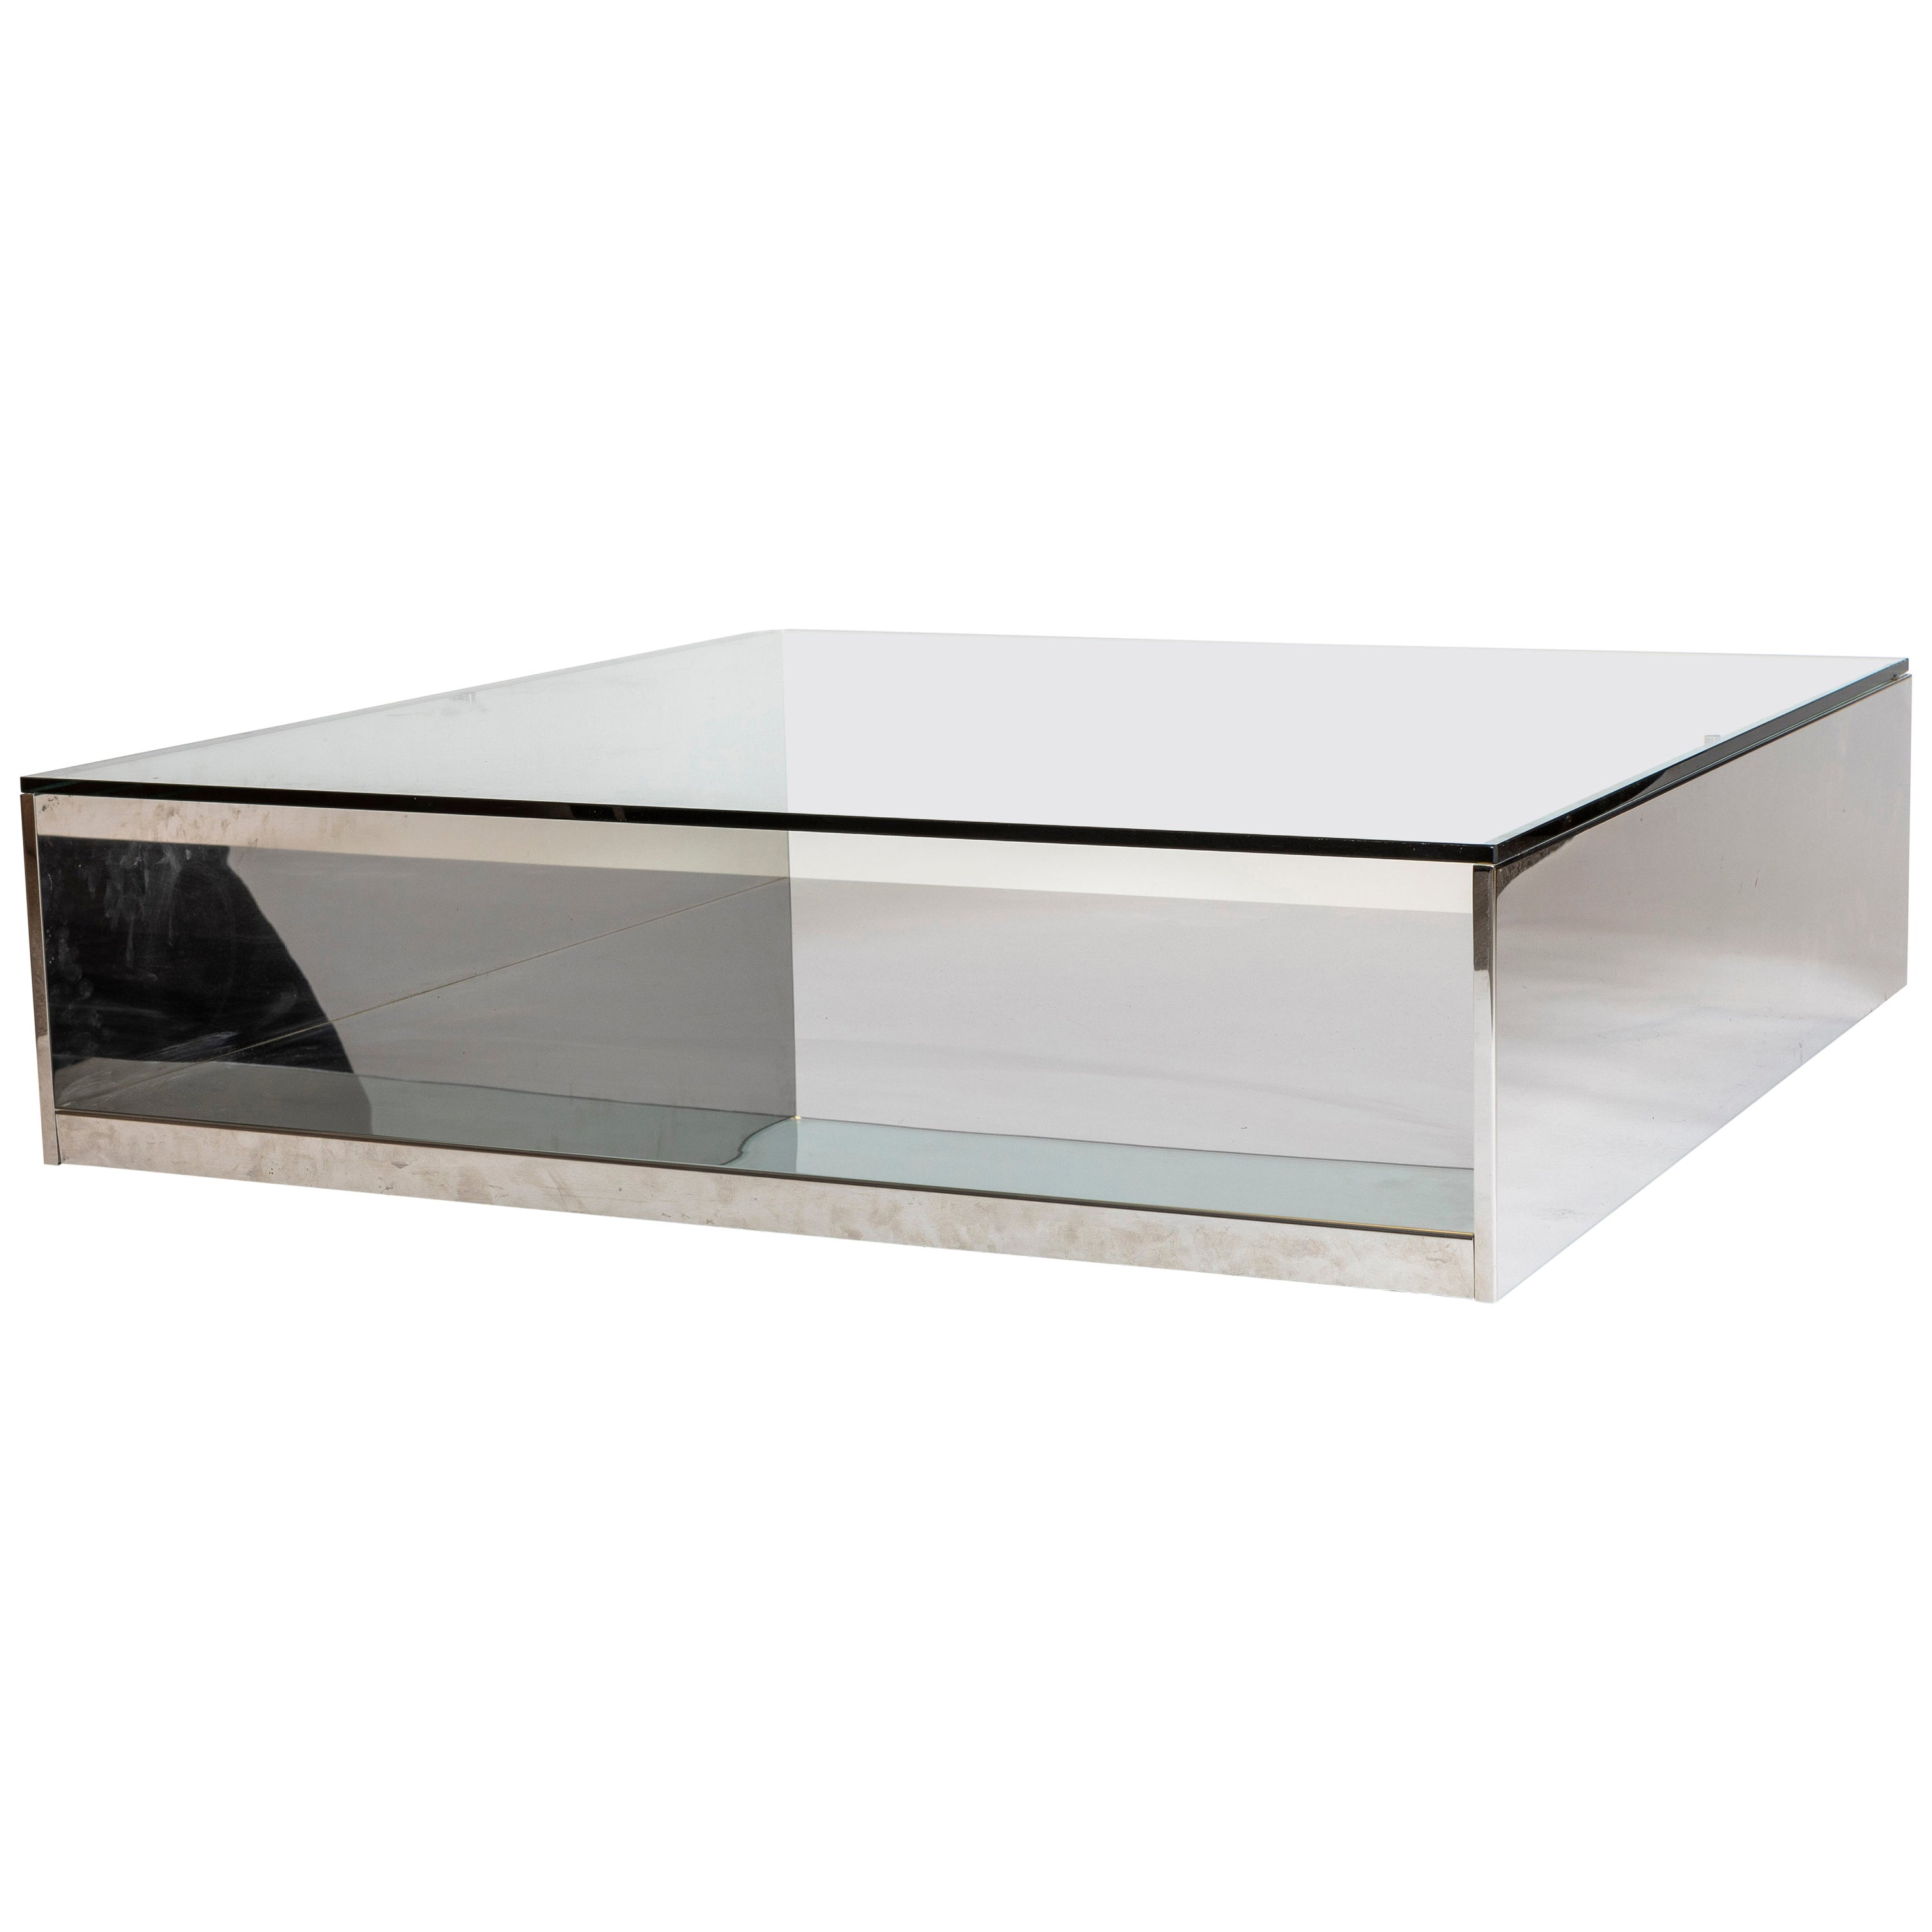 1970s Saporiti Embossed Chrome Coffee Table with Glass Top